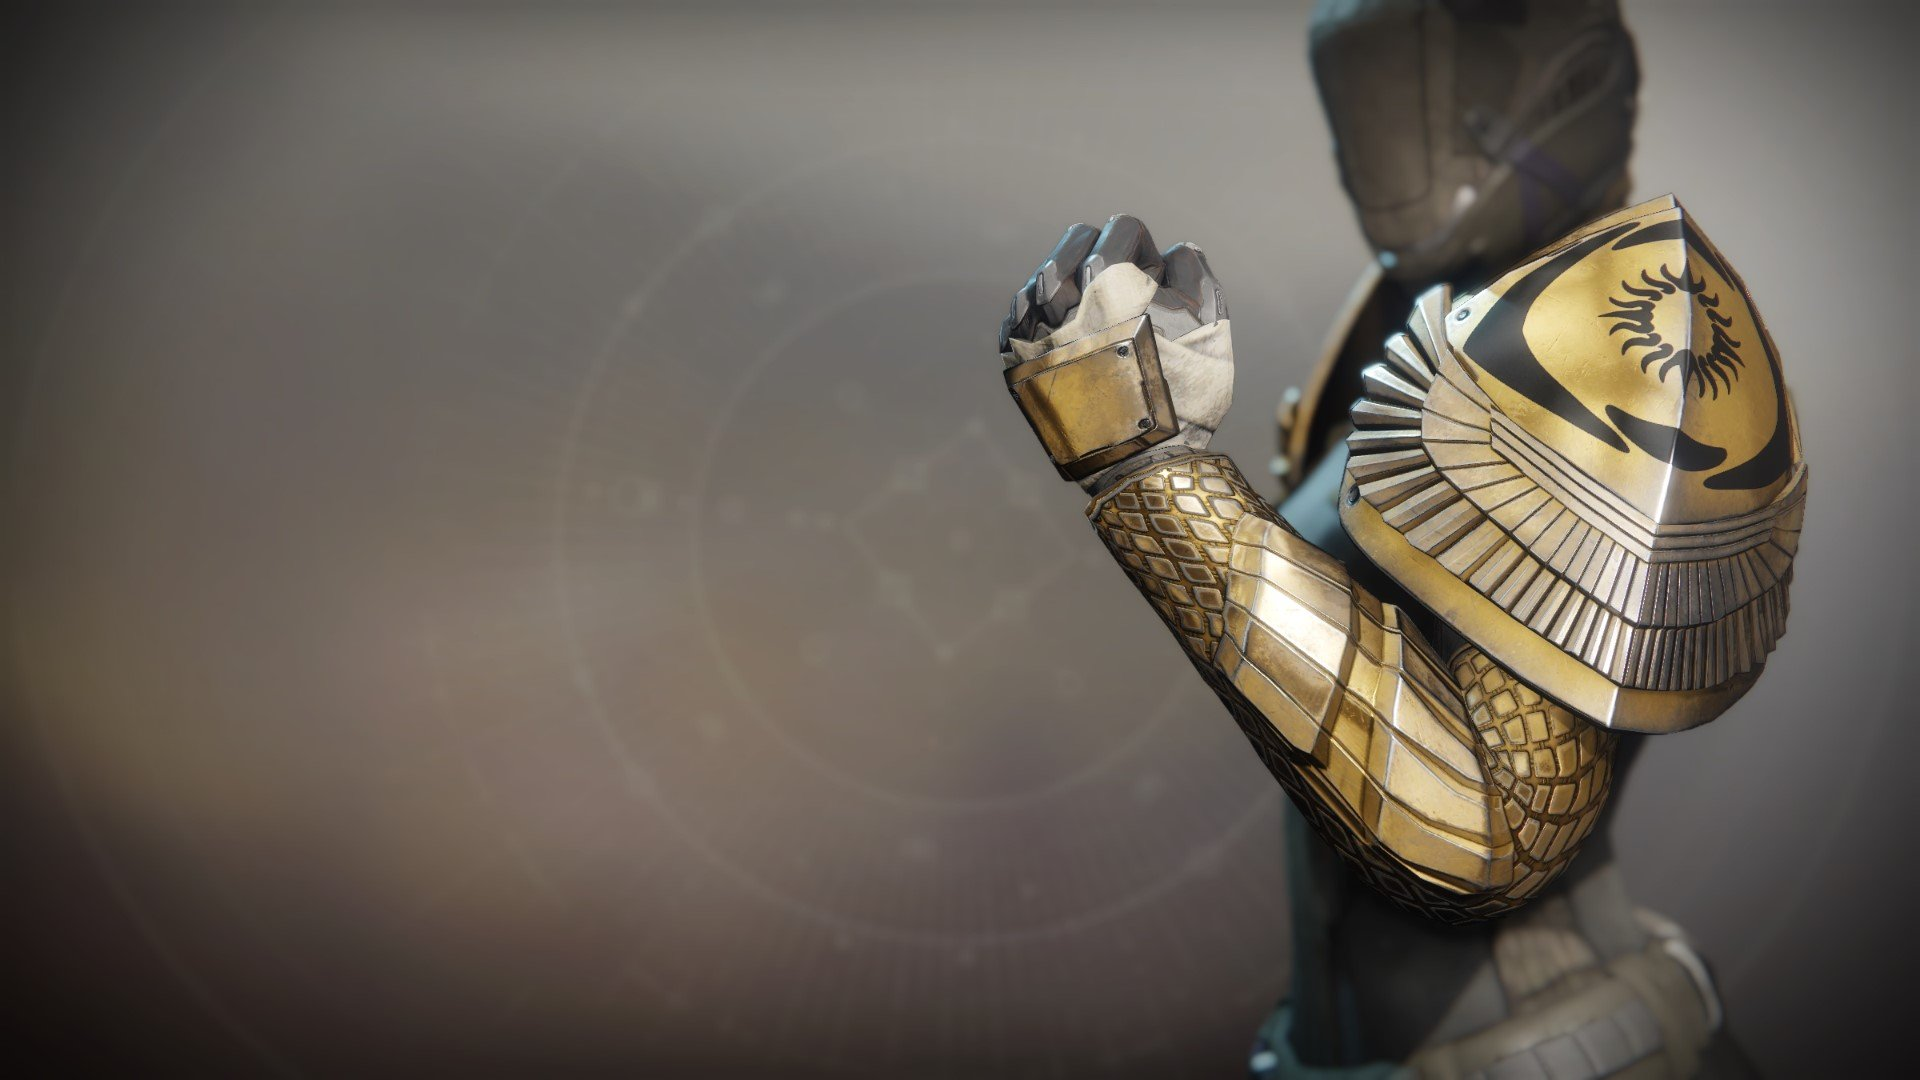 An in-game render of the Gauntlets of the Exile.